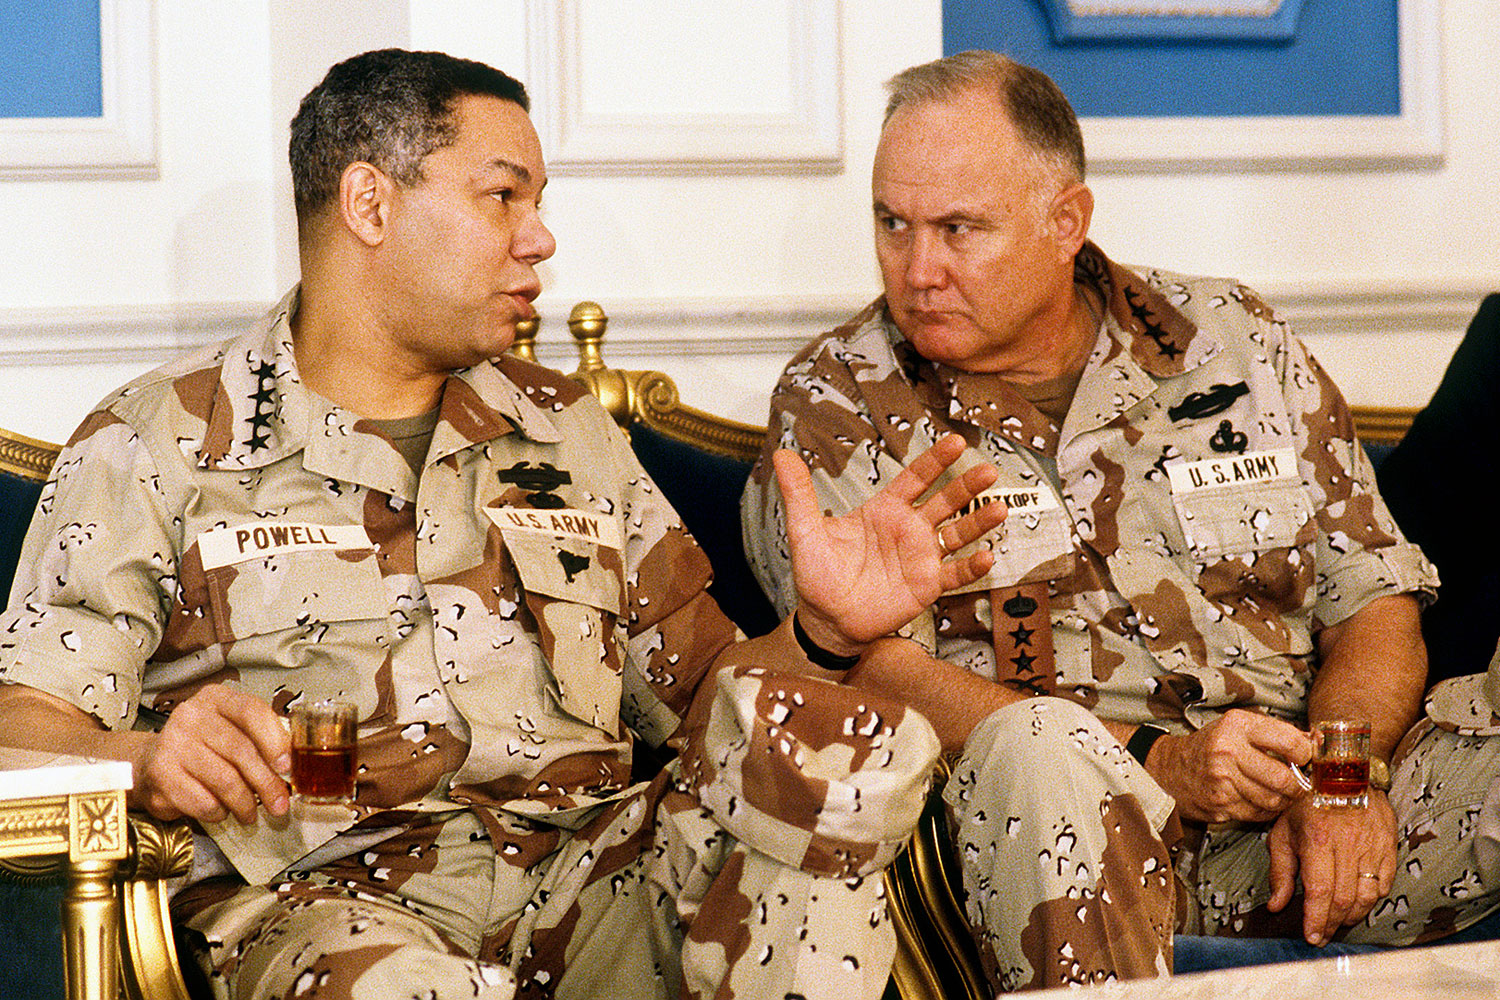 Starting in 1989, Gen. Colin Powell, left, served as the first black chairman of the Joint Chiefs of Staff. In 2001 he made history again as the first black U.S. Secretary of State. (DoD photo)